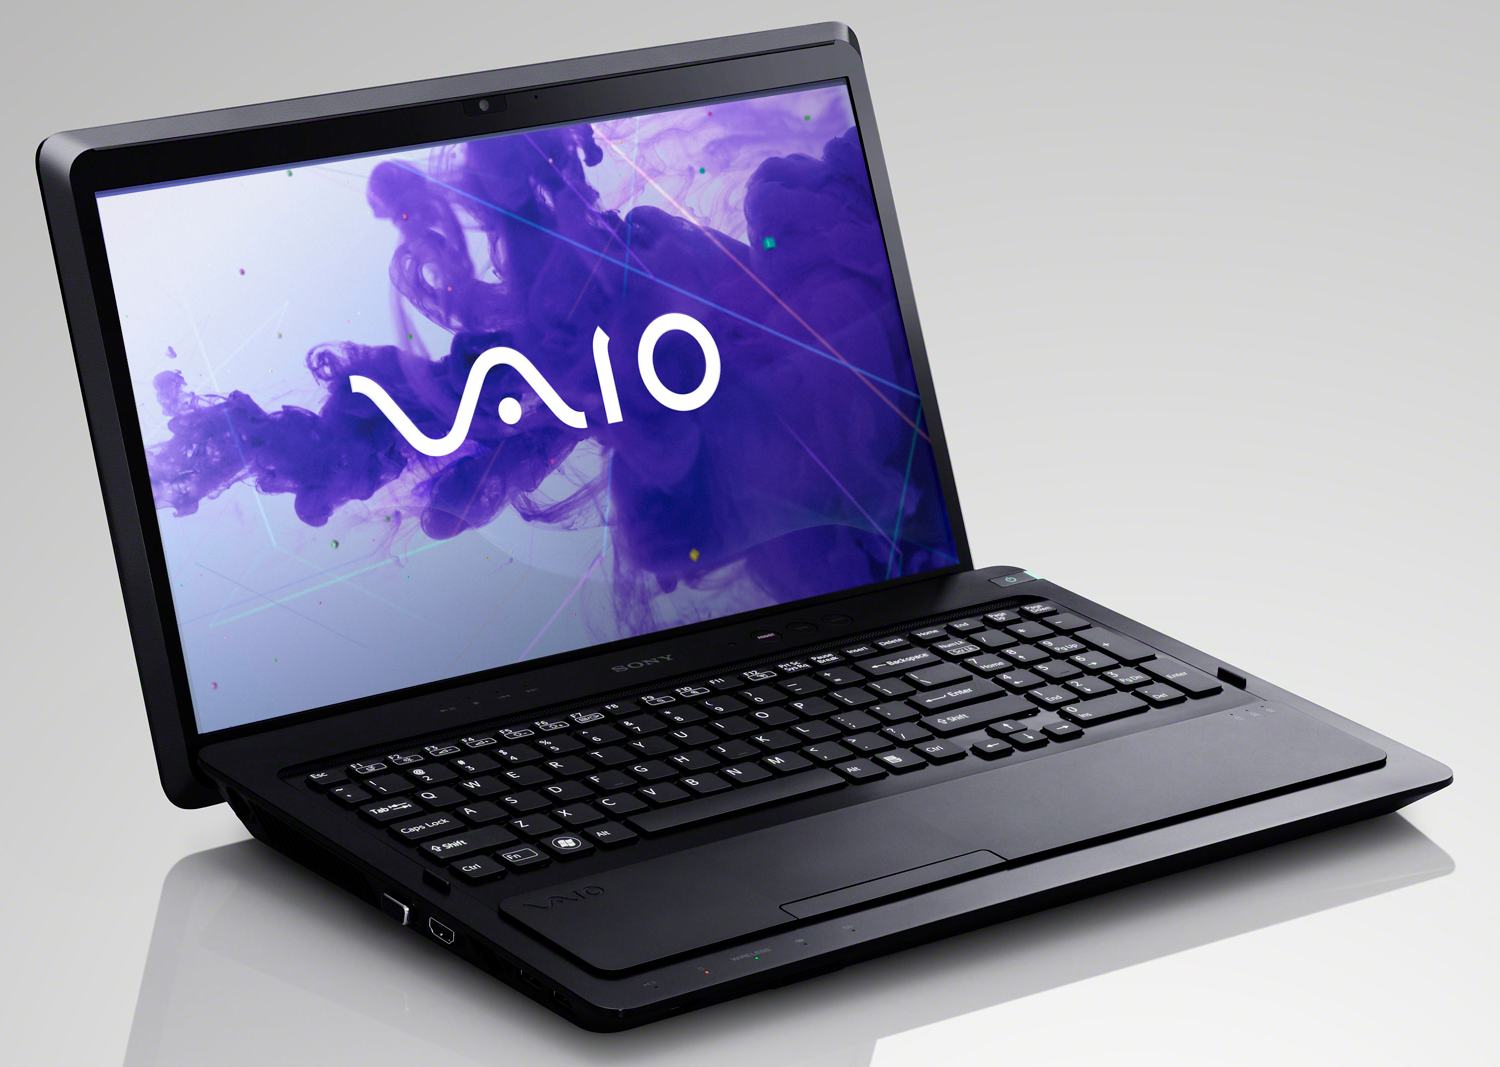 Sony Vaio VPCF227FX/B Ricoh Card Reader Download Drivers